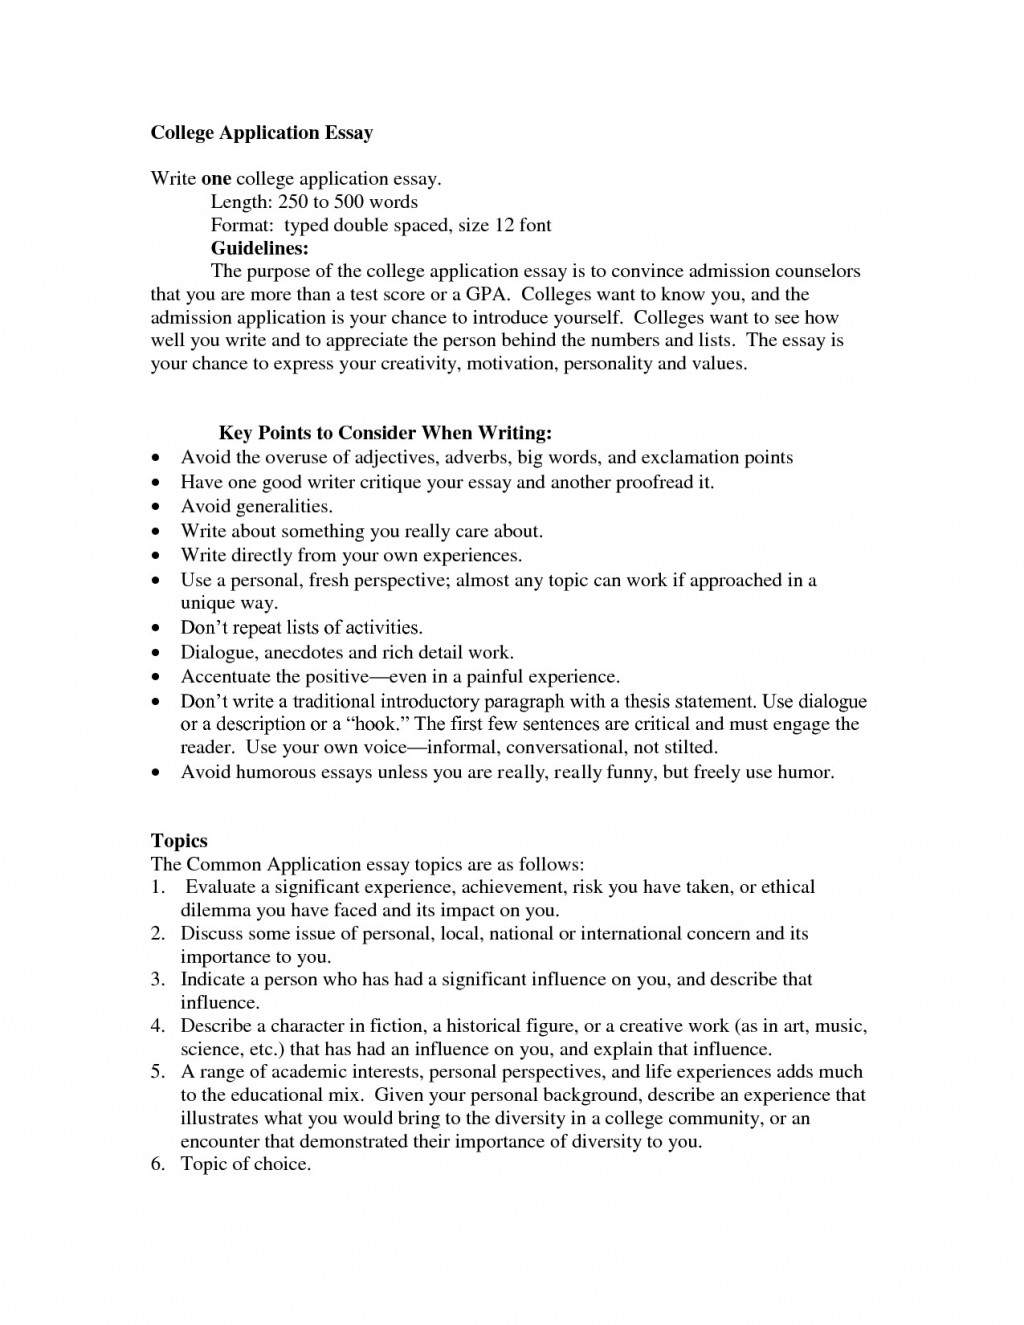 015 College Application Essay Outline Professional Writing Website Throughout Format Writer Com Outstanding My Writer.com Pro Reviews Comparative Large